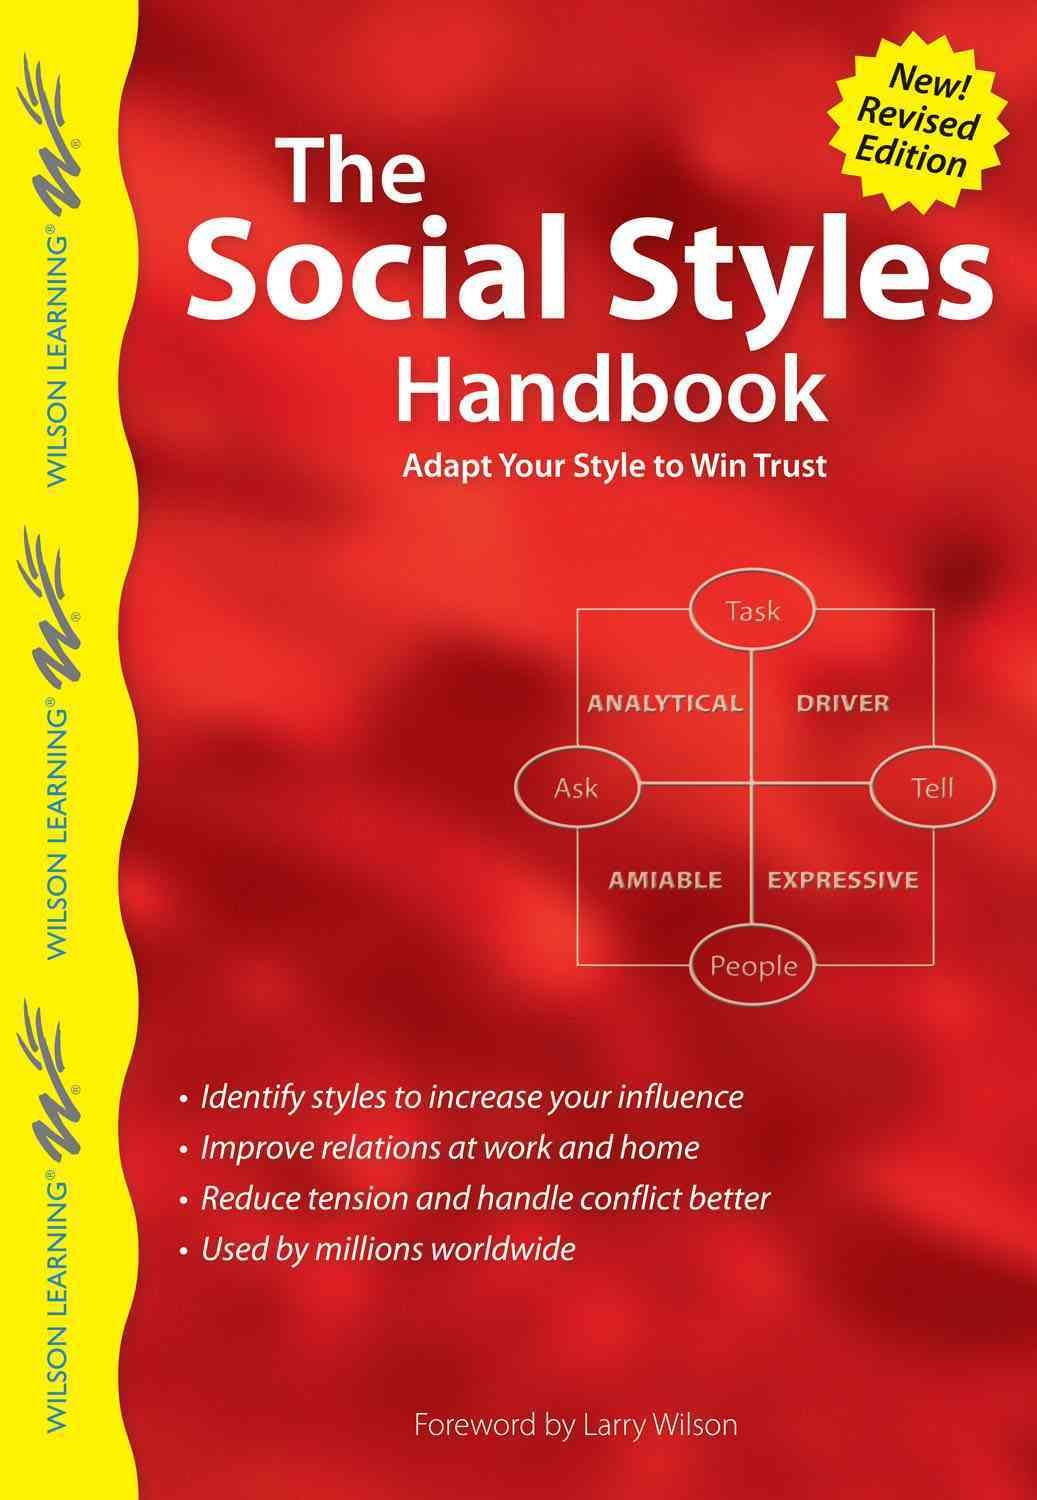 The Social Styles Handbook By Wilson Learning Library/ Wilson, Larry (FRW)